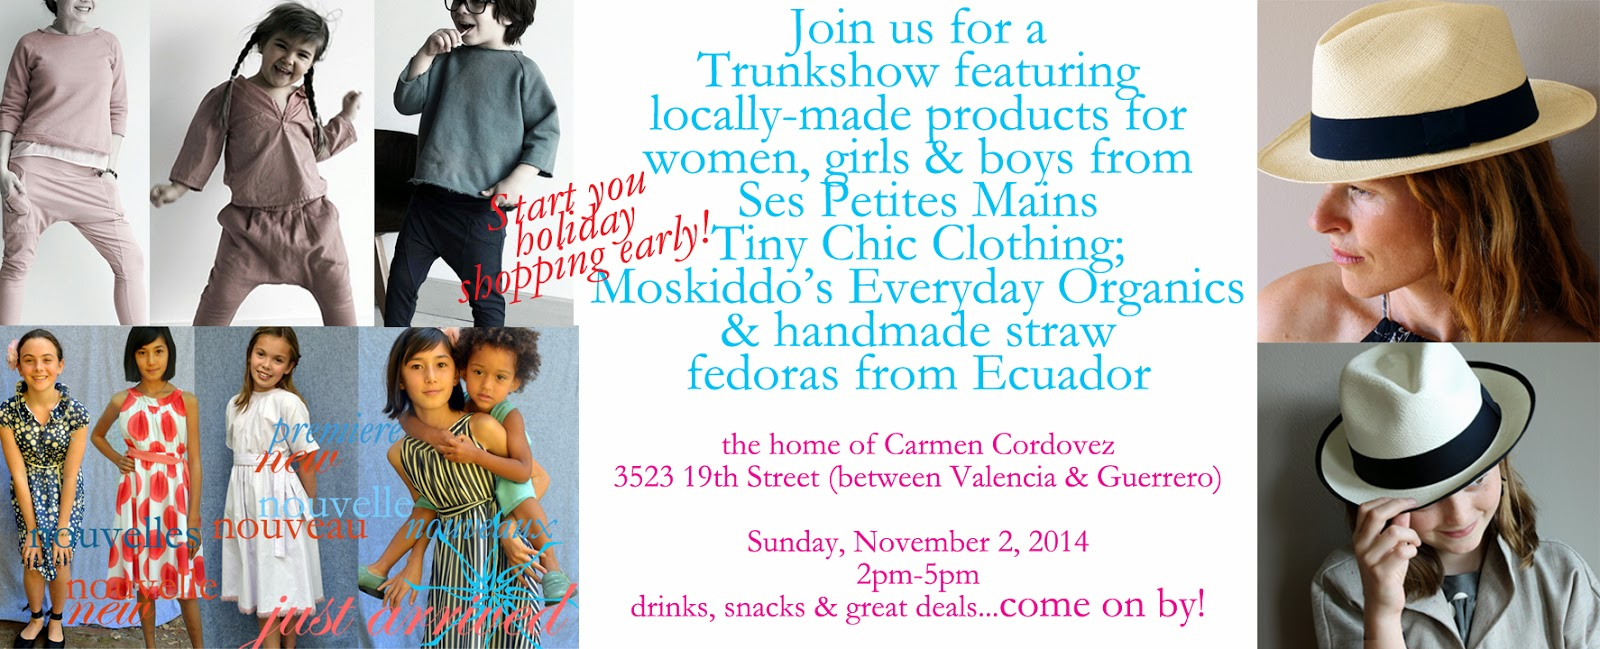 holiday trunkshow, shopping in the bay area, sfmade, mos kiddos, panama hats for women and girls, organic clothing for women, girls and boys